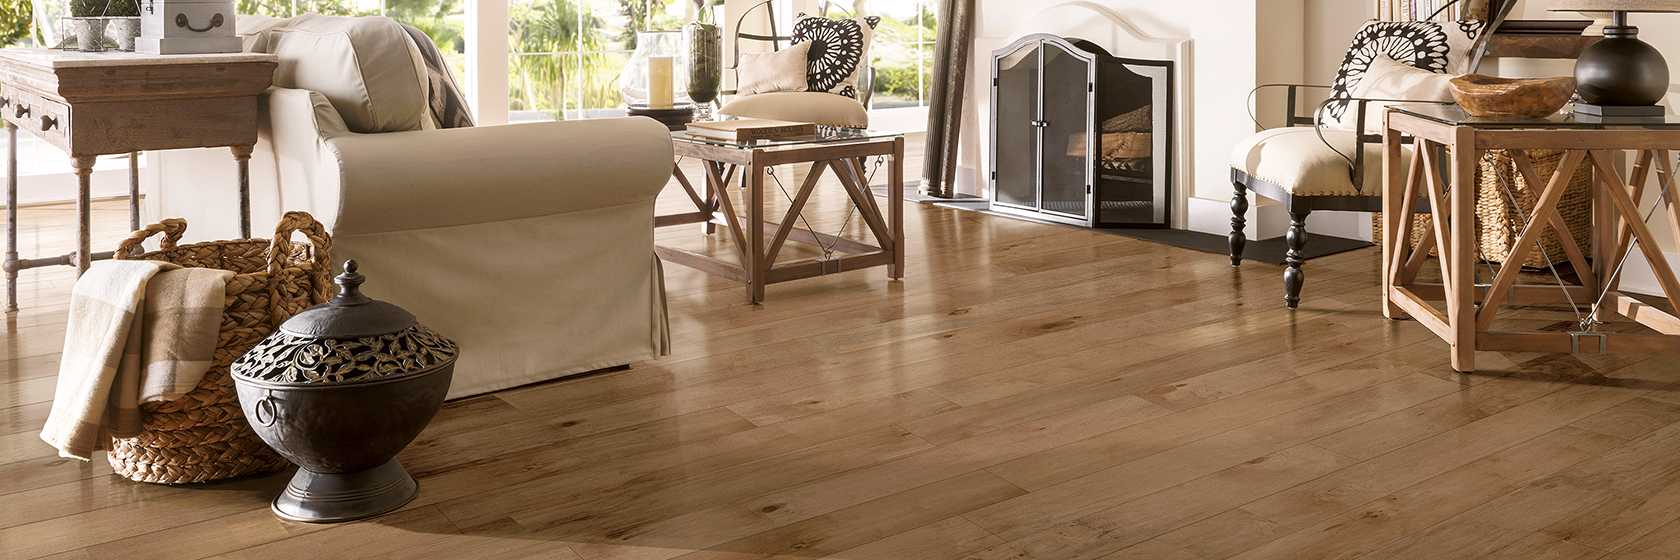 Early Canterbury Maple Engineered Hardwood - Tudor Tan - EMEC72L02S